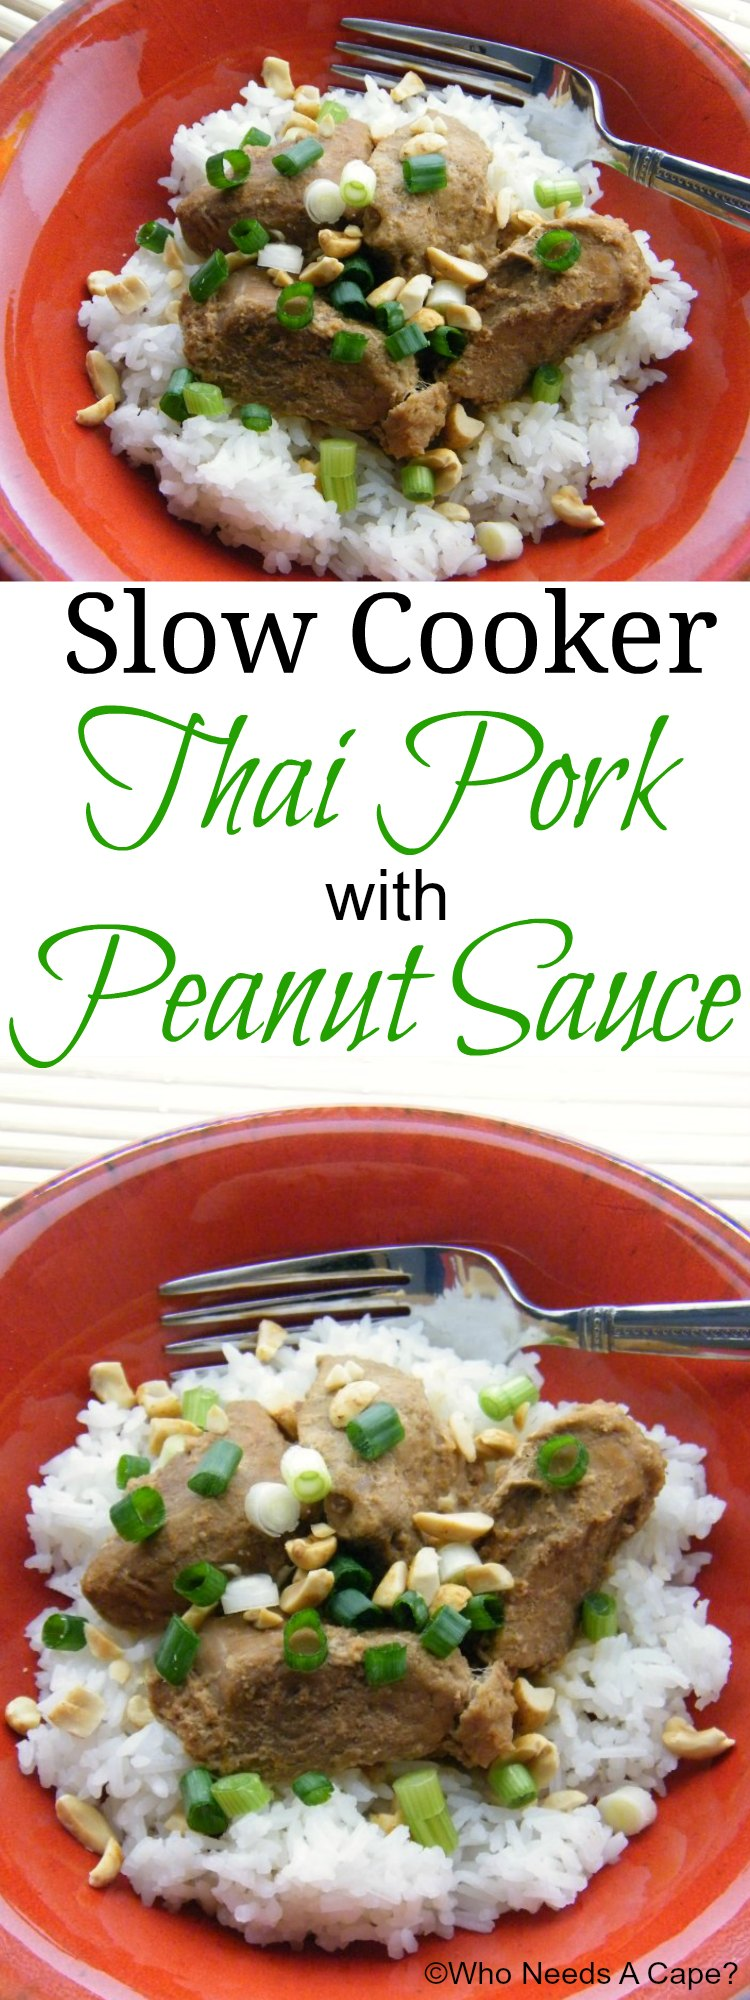 Slow Cooker Thai Pork with Peanut Sauce | Who Needs A Cape?